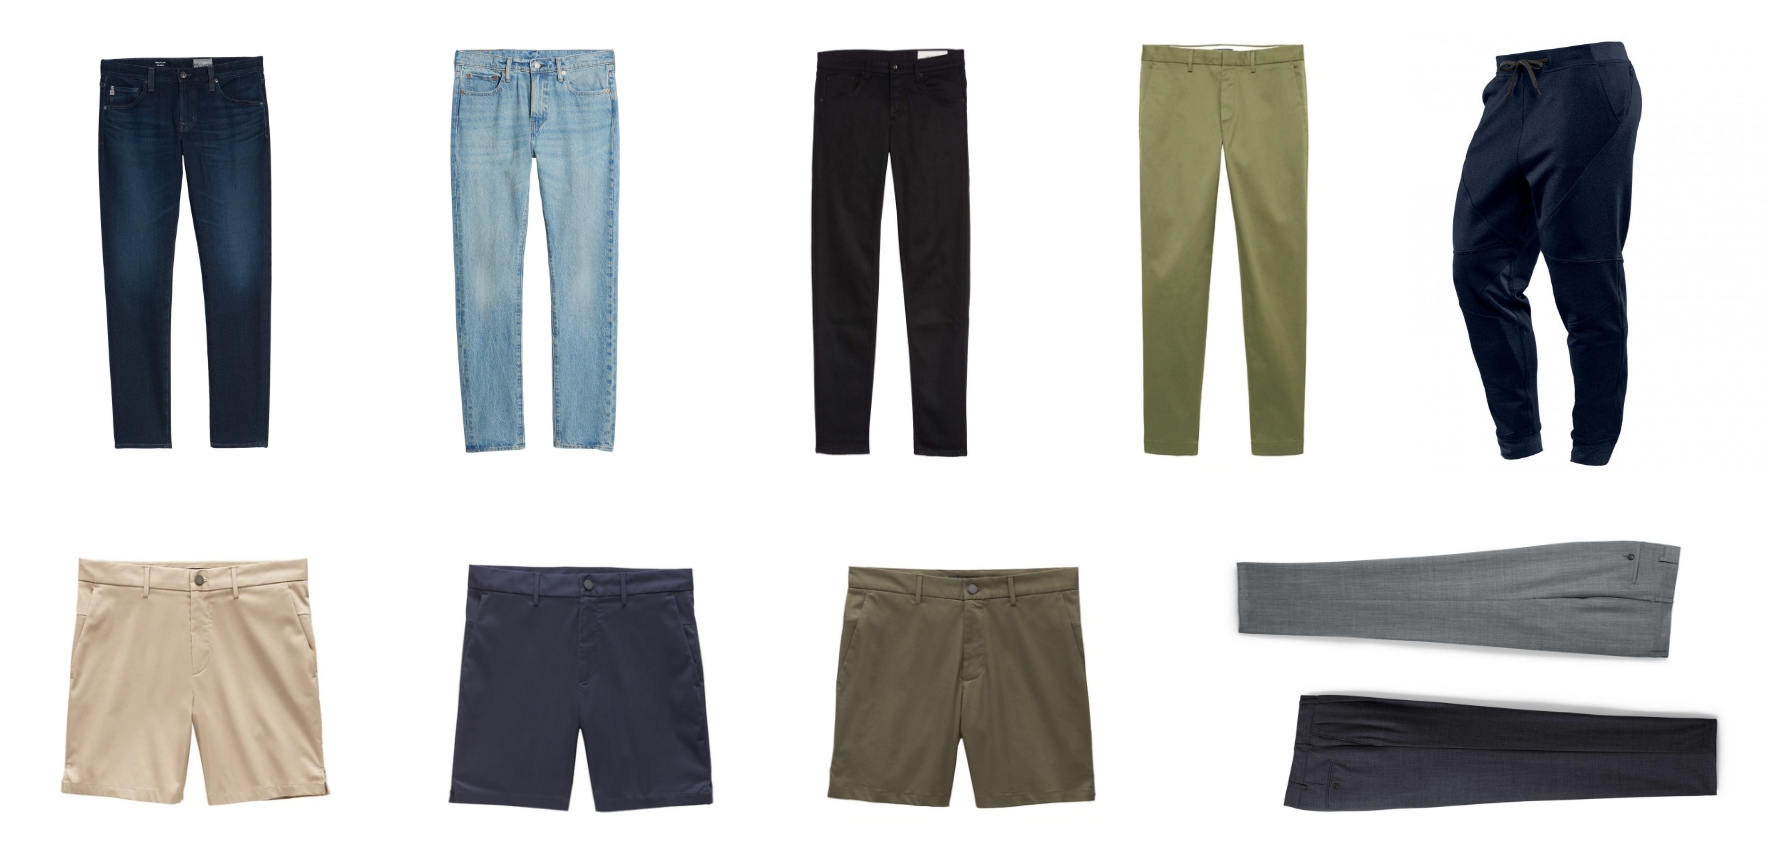 Minimalist mens pants collection